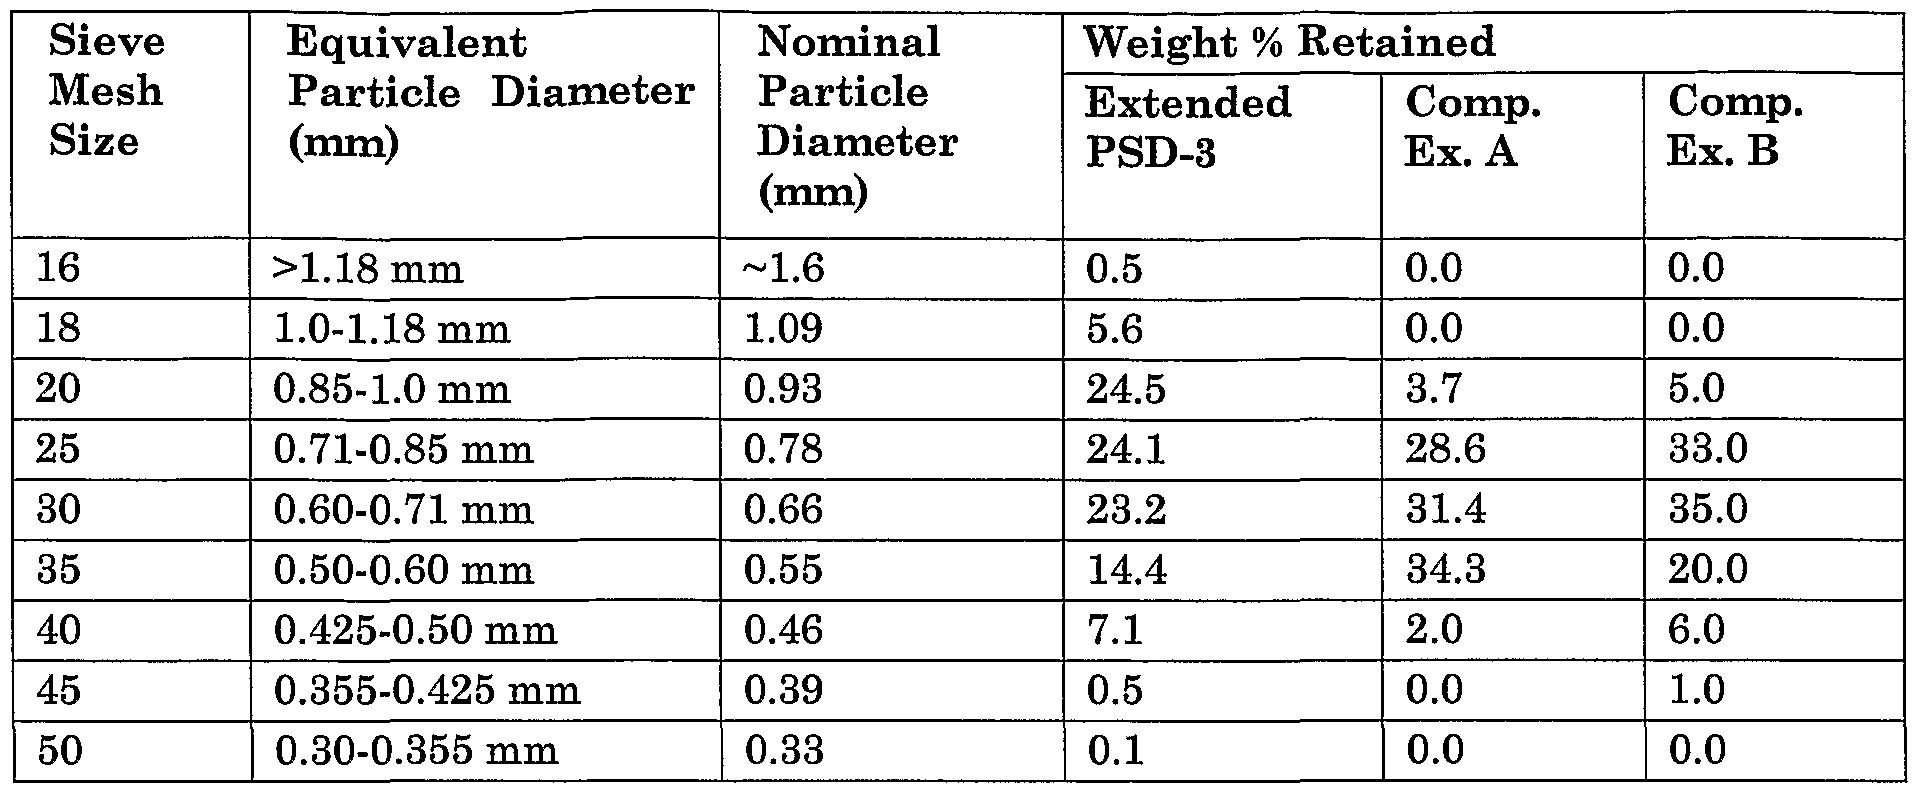 Patent ep1590309a2 extended particle size distribution ceramic figure imgf0000250001 nvjuhfo Image collections